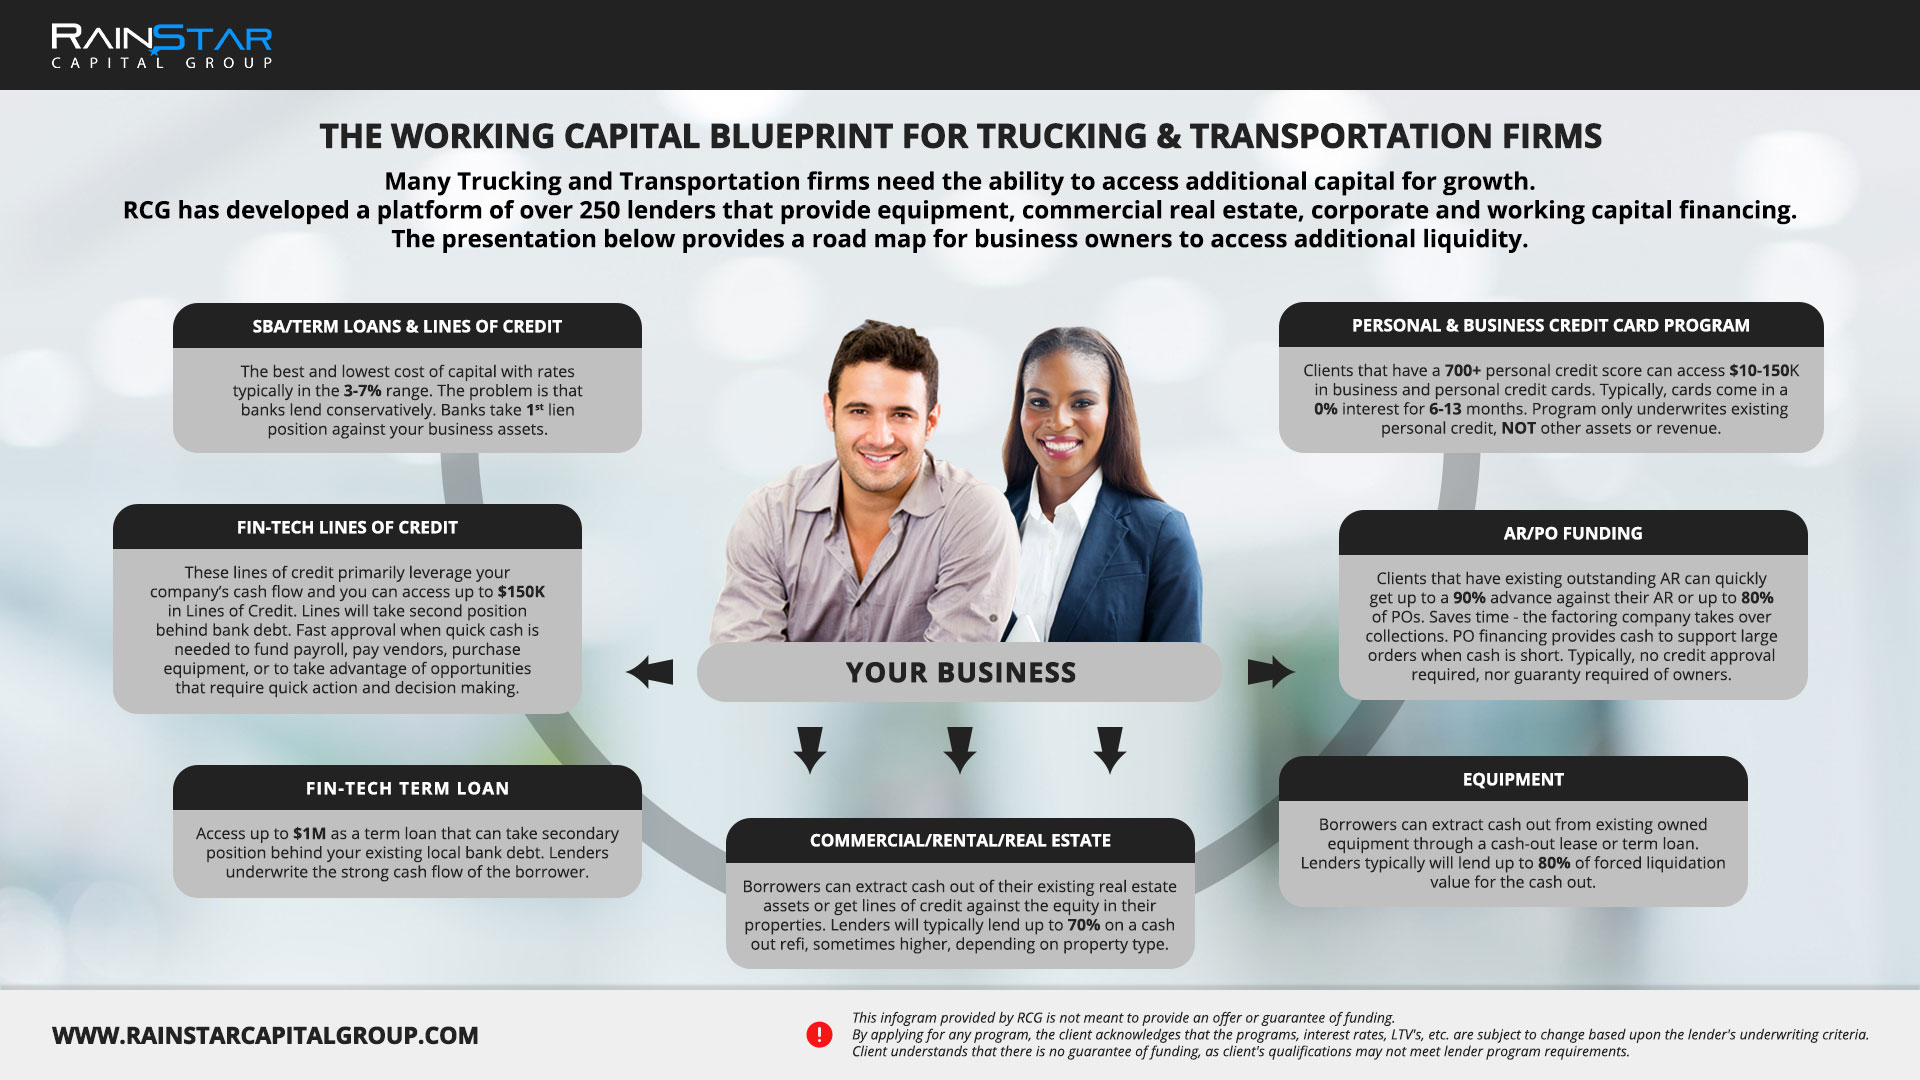 Trucking & Transportation Firms - Click to Enlarge